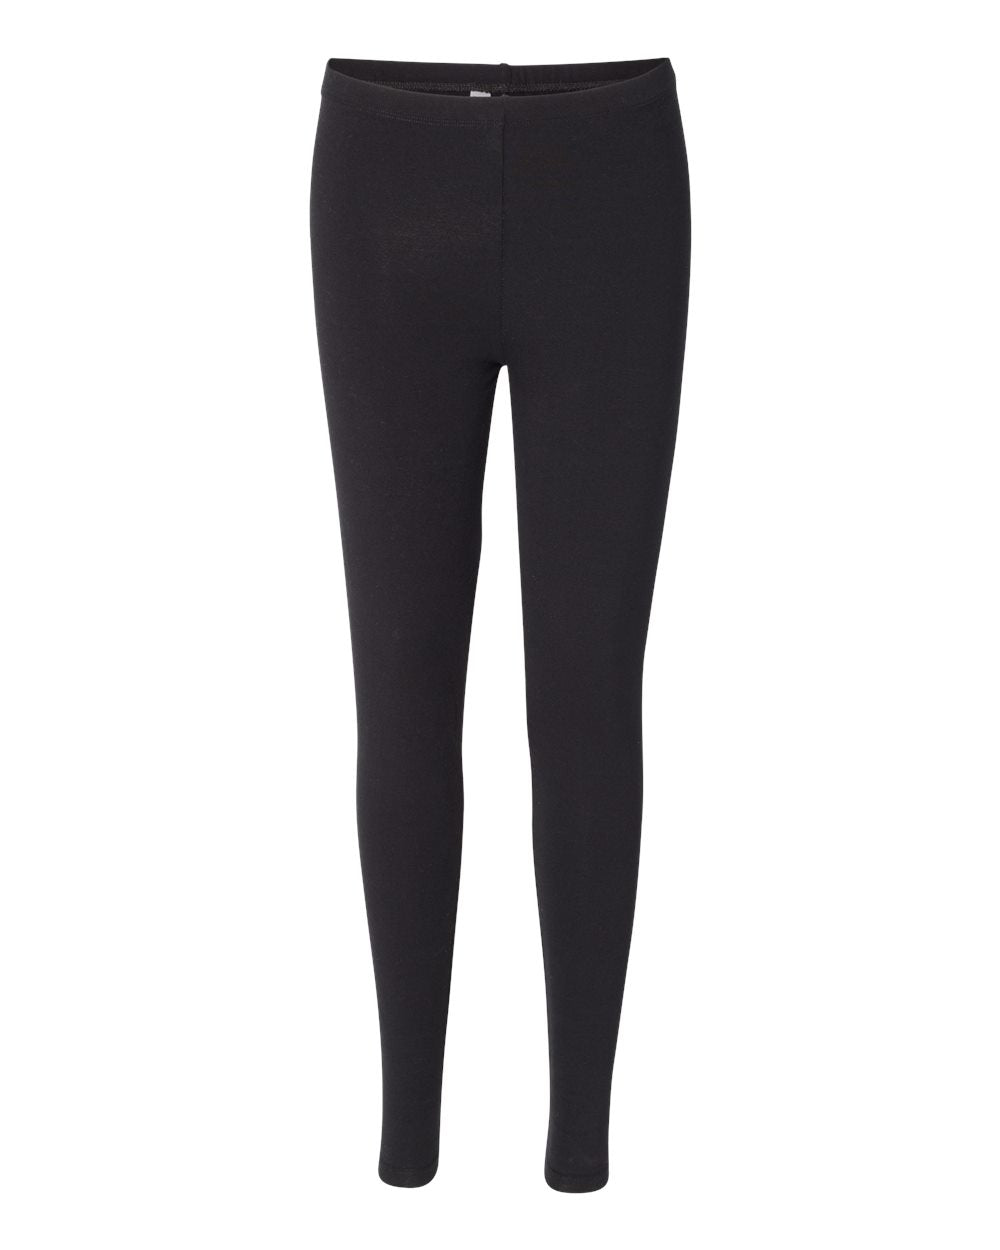 Spandex Leggings - 11.80 EA